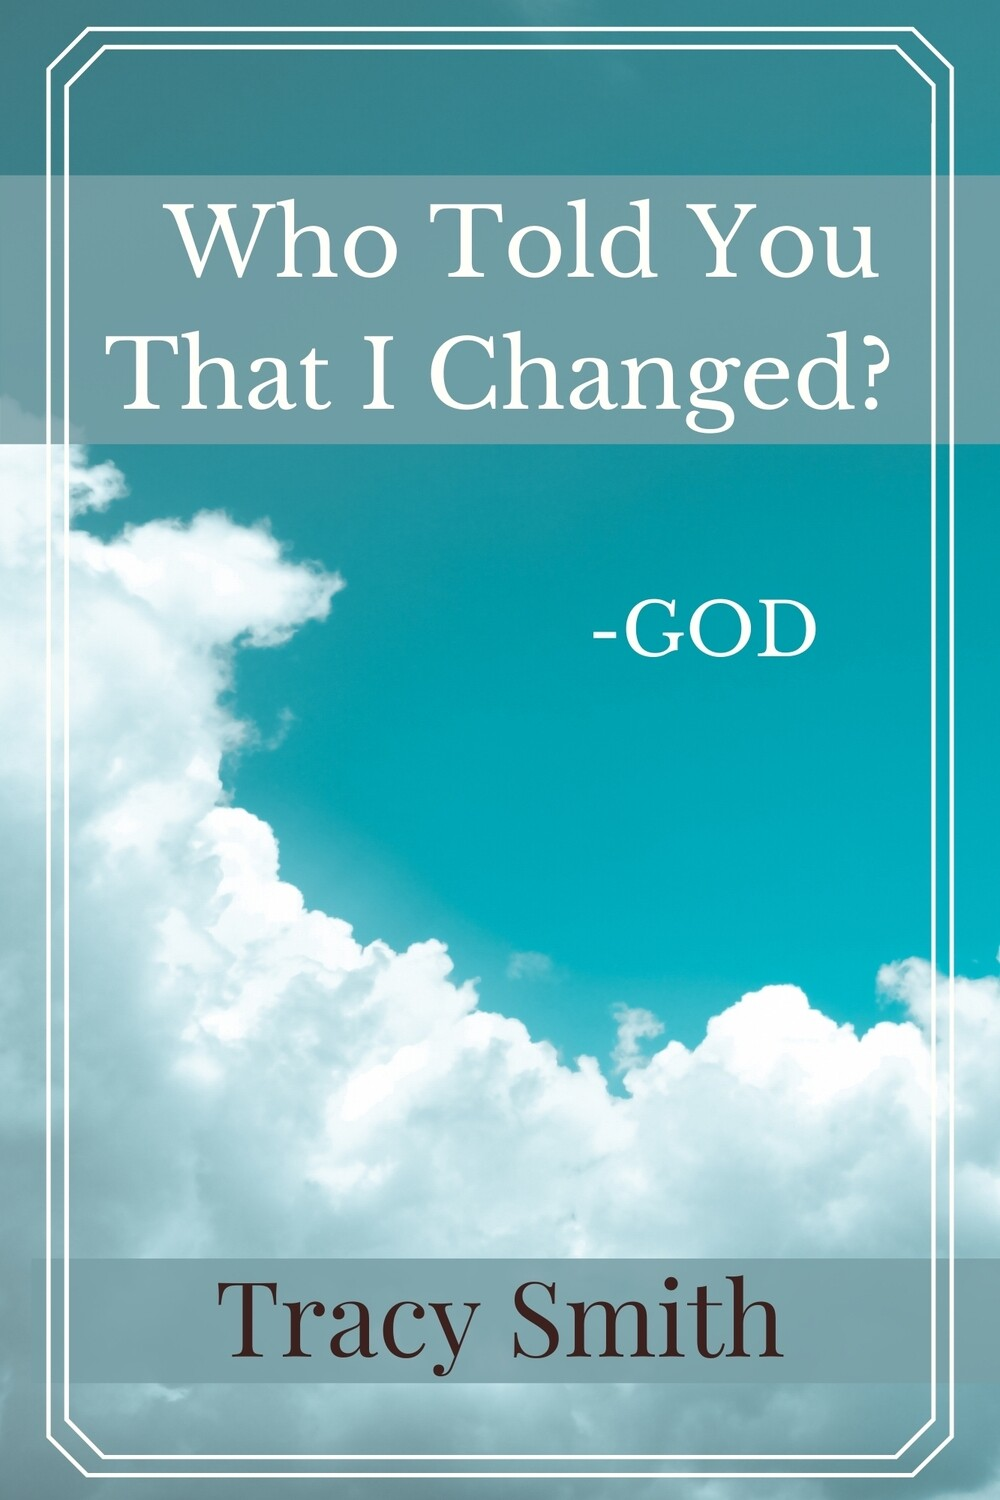 Who Told You That I Changed by Tracy Smith